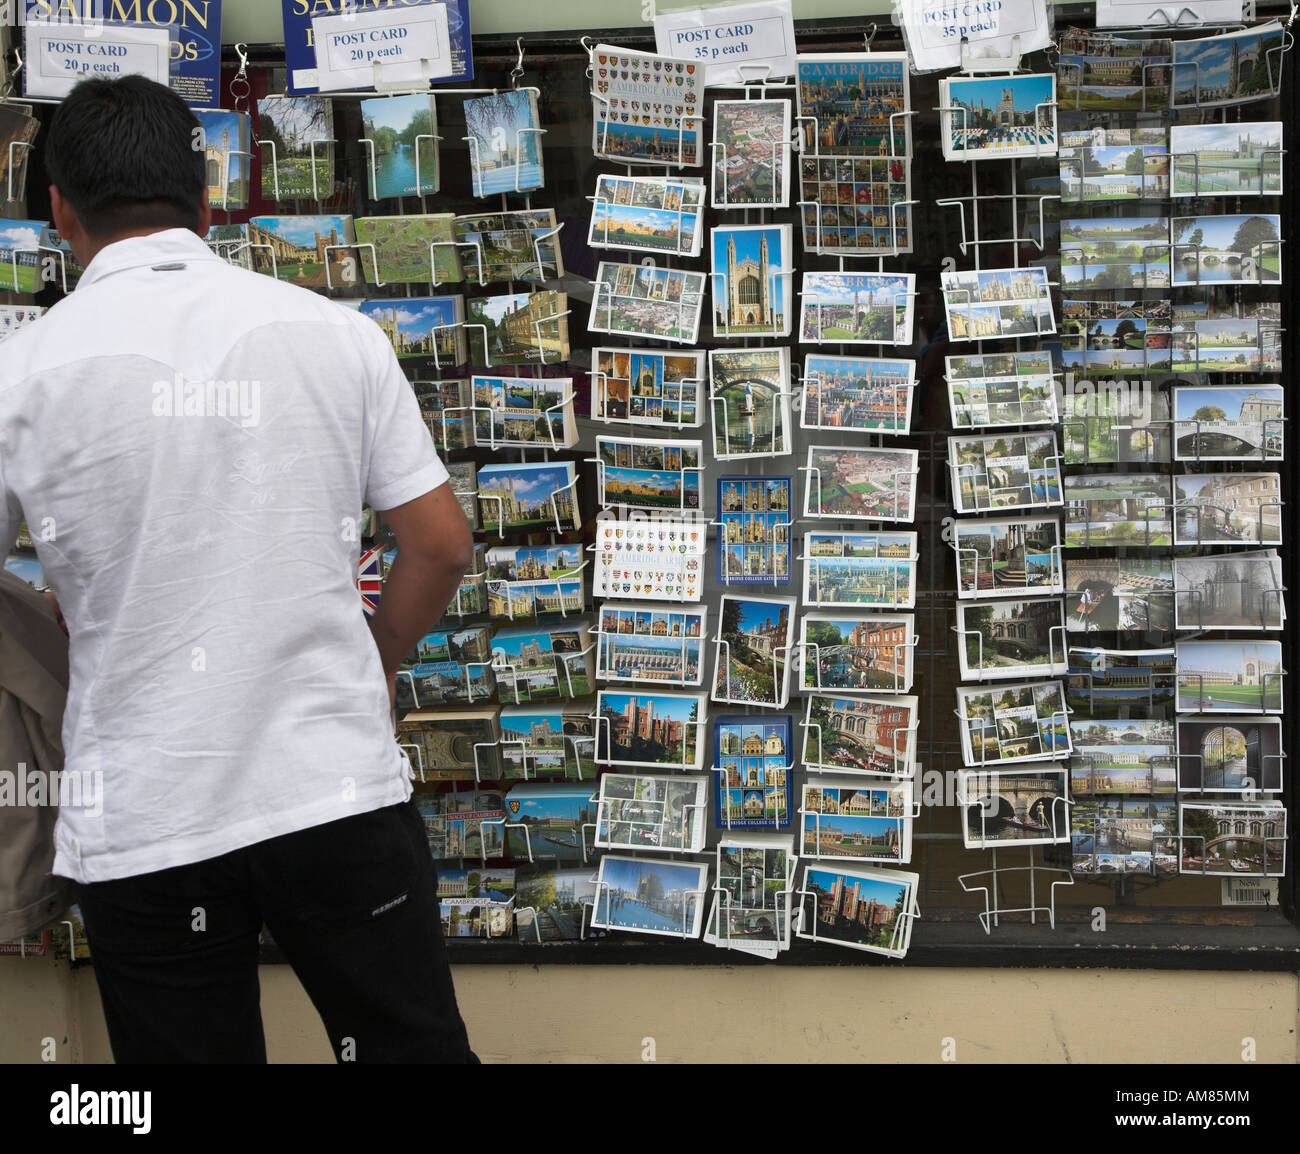 Man looking through postcards on display Cambridge England - Stock Image